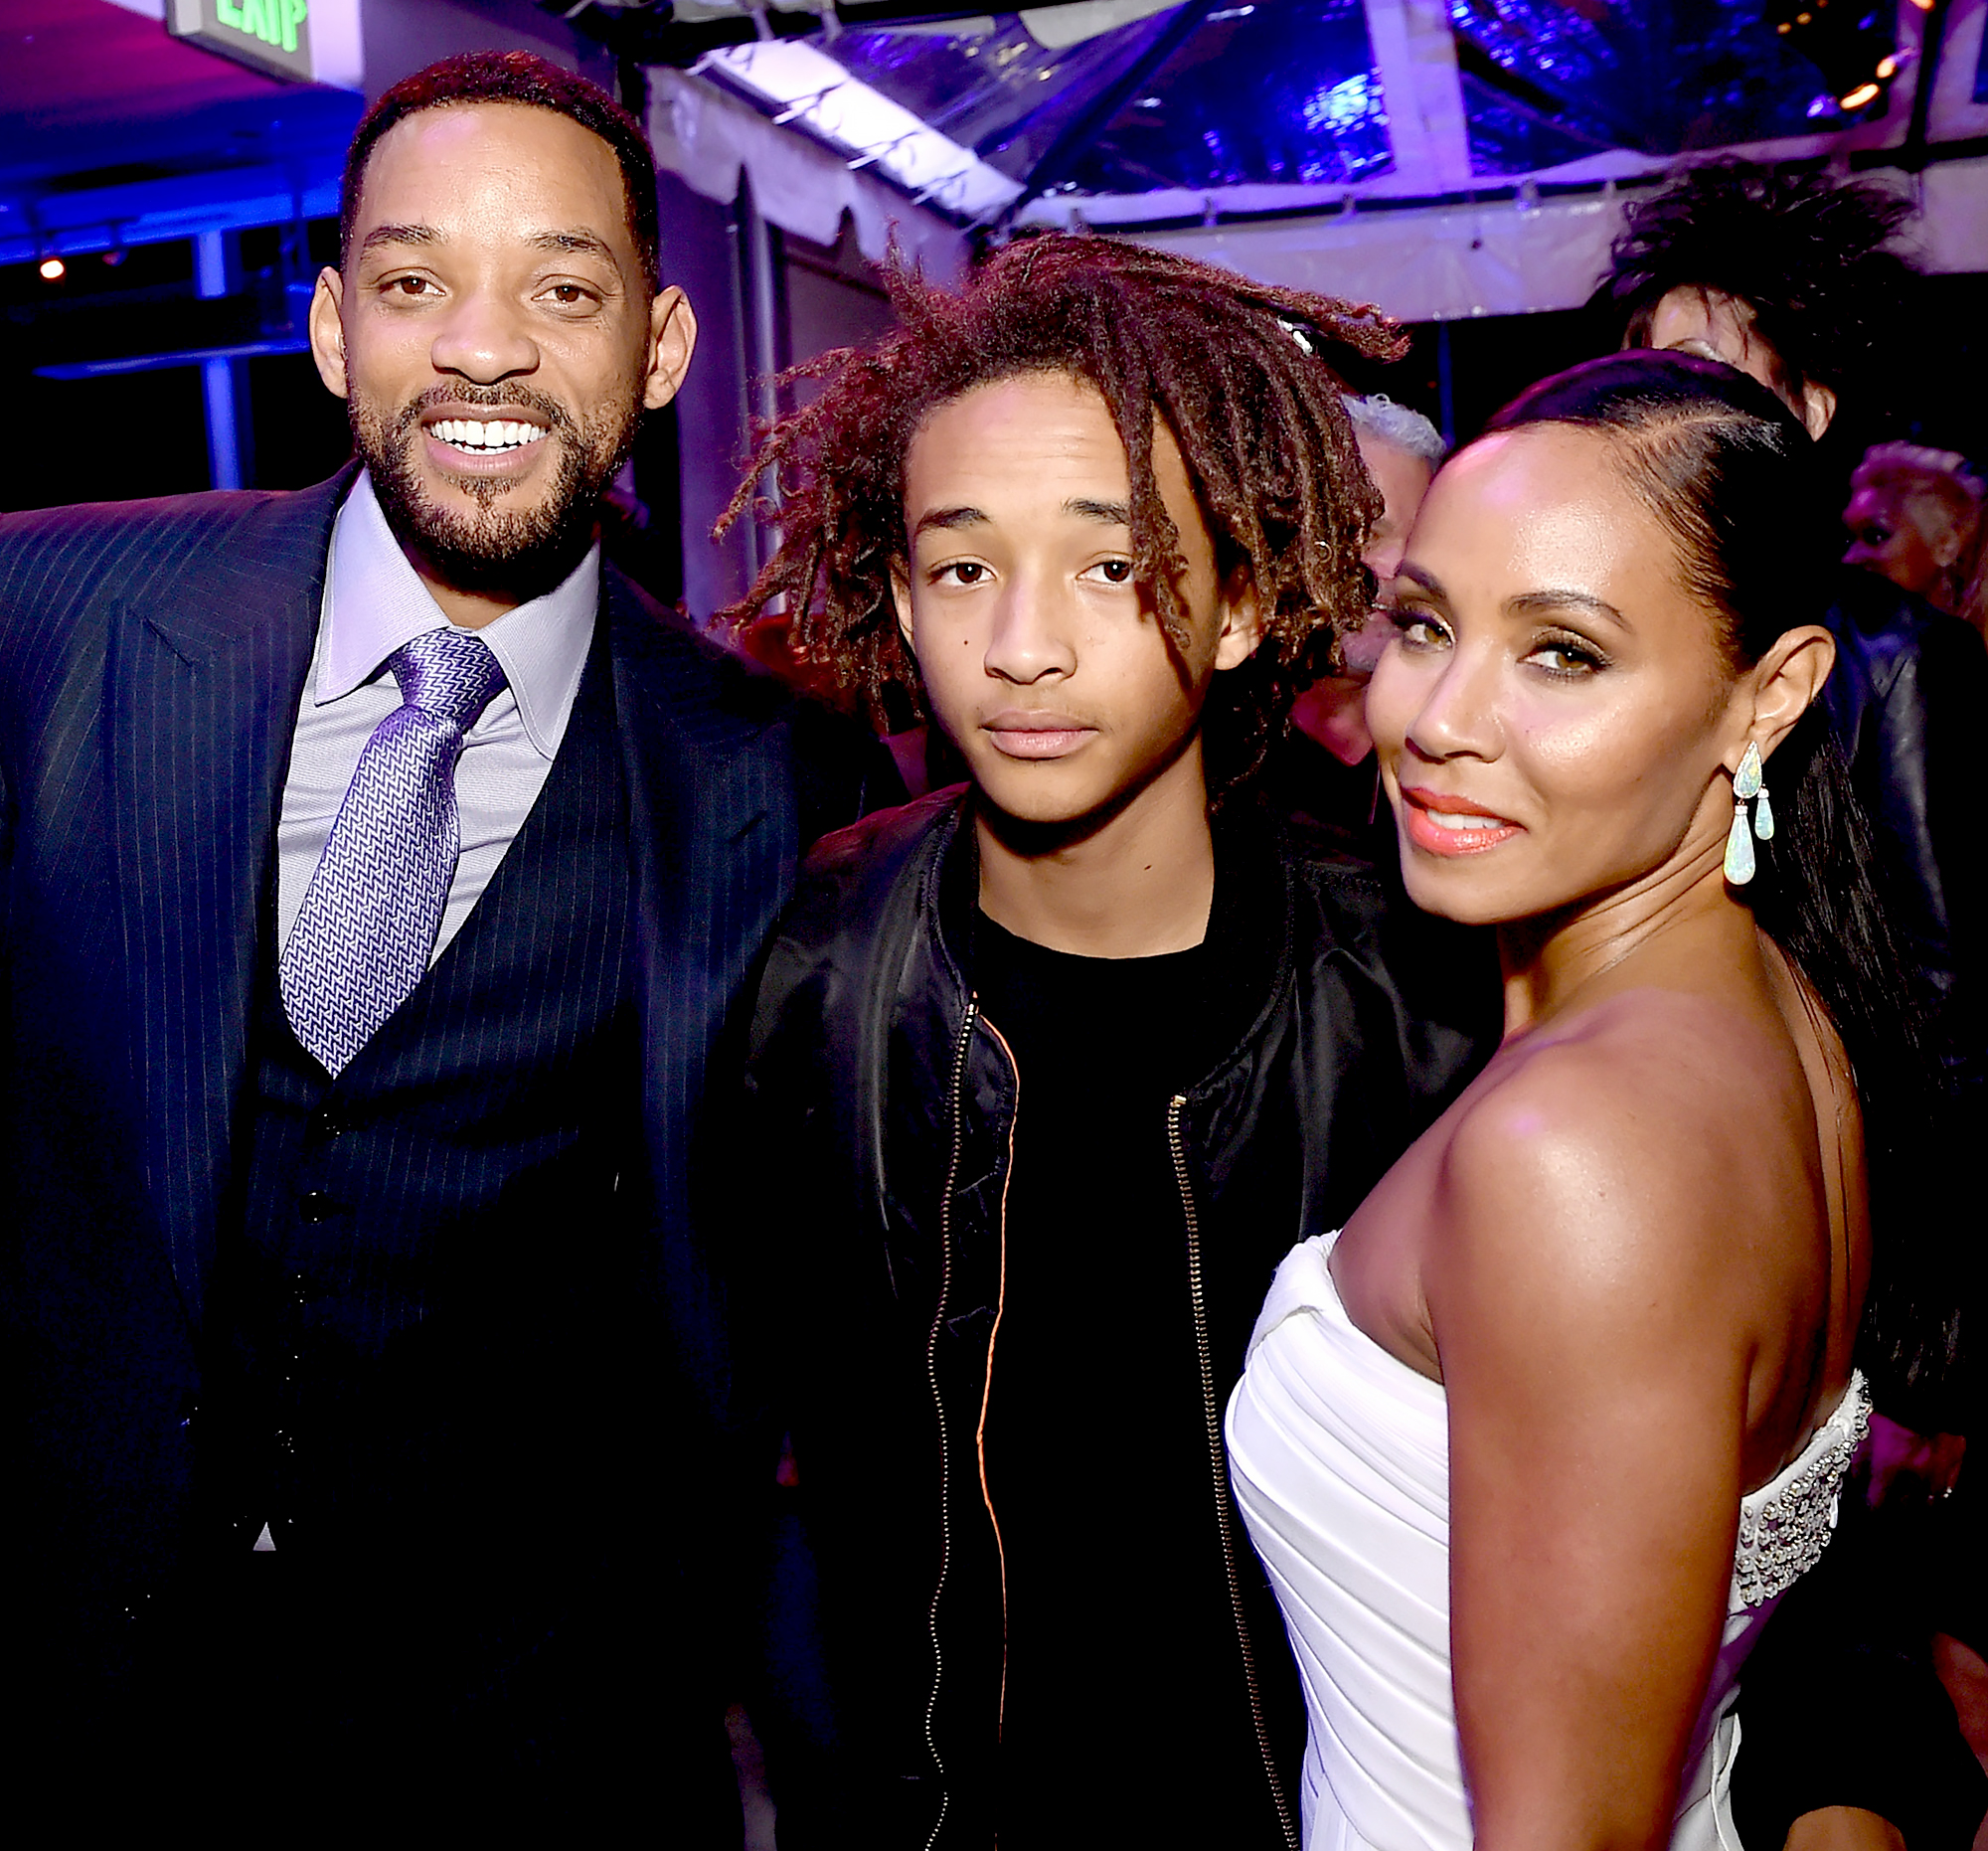 Will-Smith-Jaden-Smith-Jada-Pinkett-Smith-21-Birthday